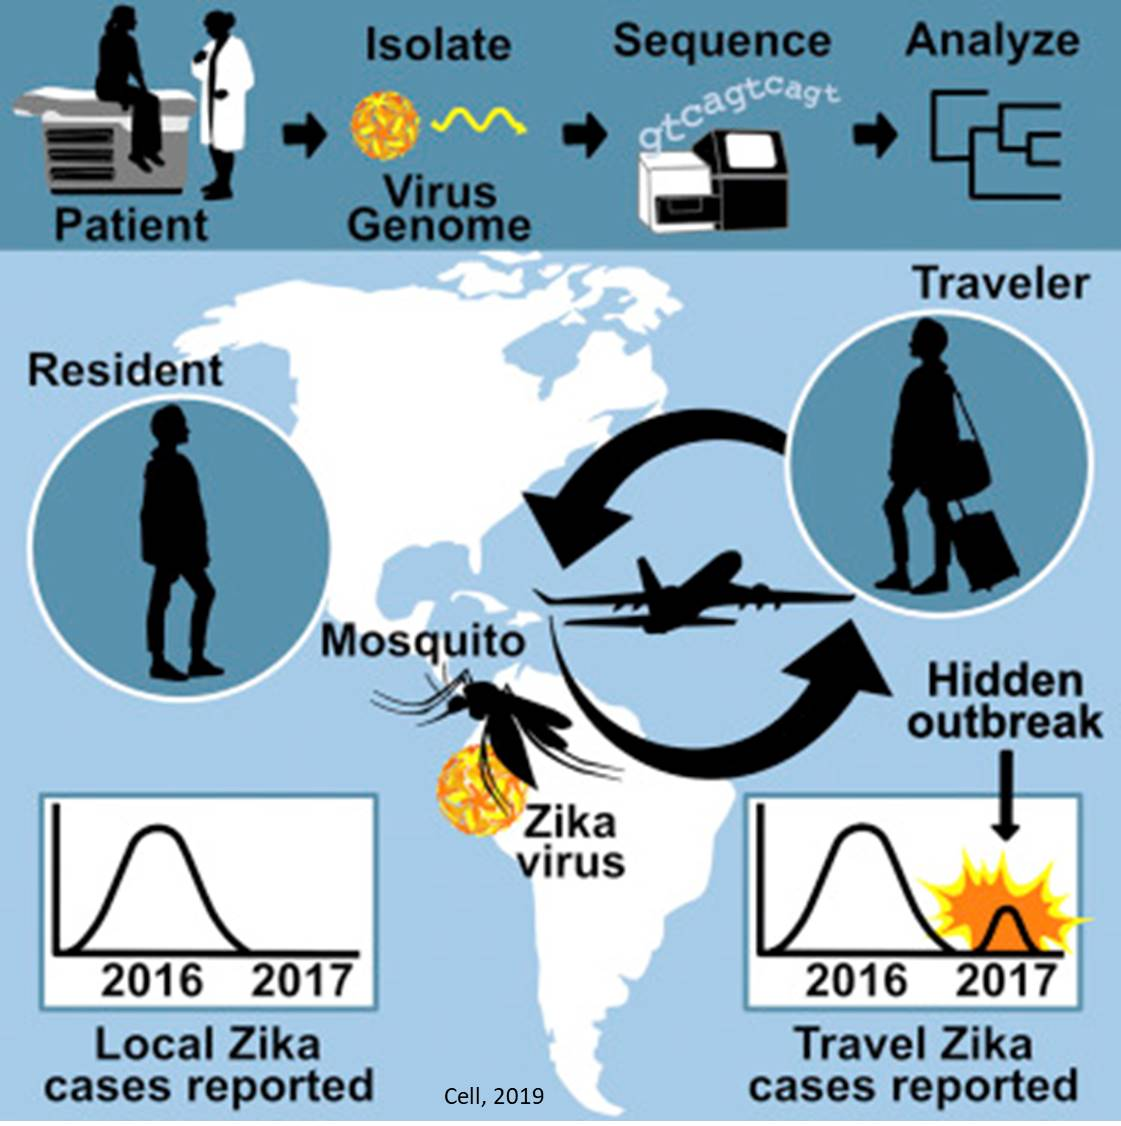 Silent spread of Zika detected using genomic and travel surveillance